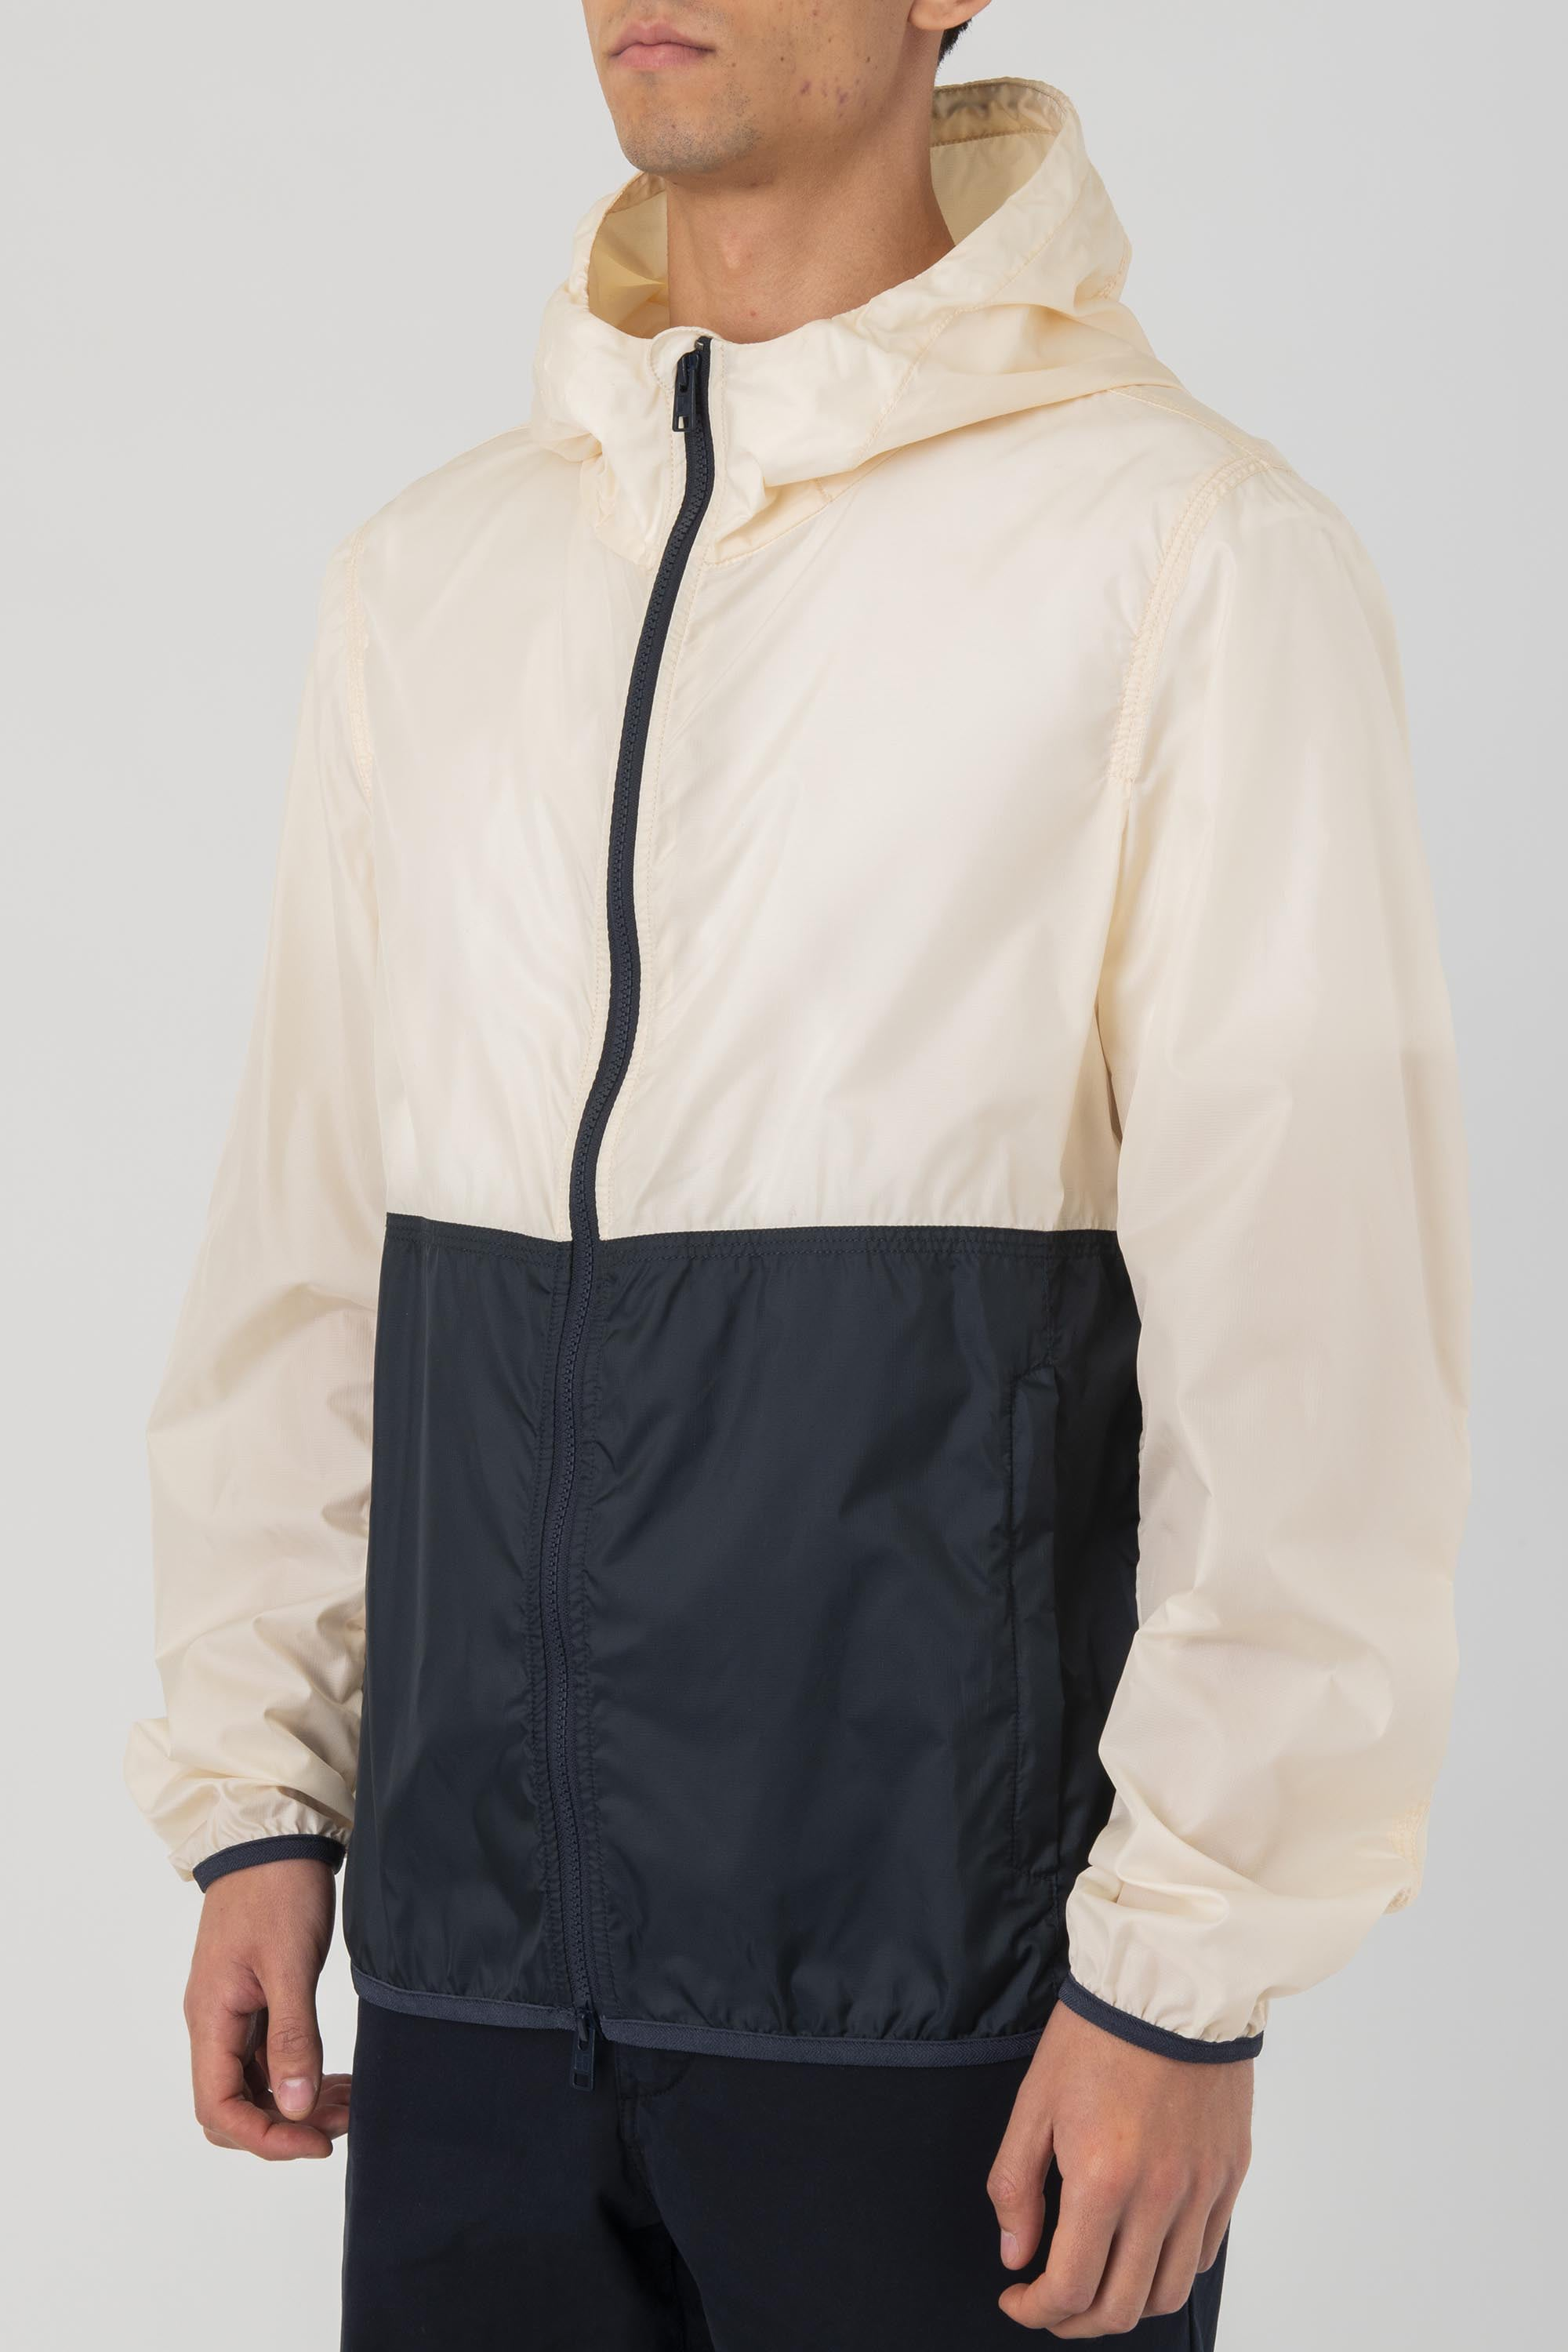 SOUTHBAY WINDBREAKER